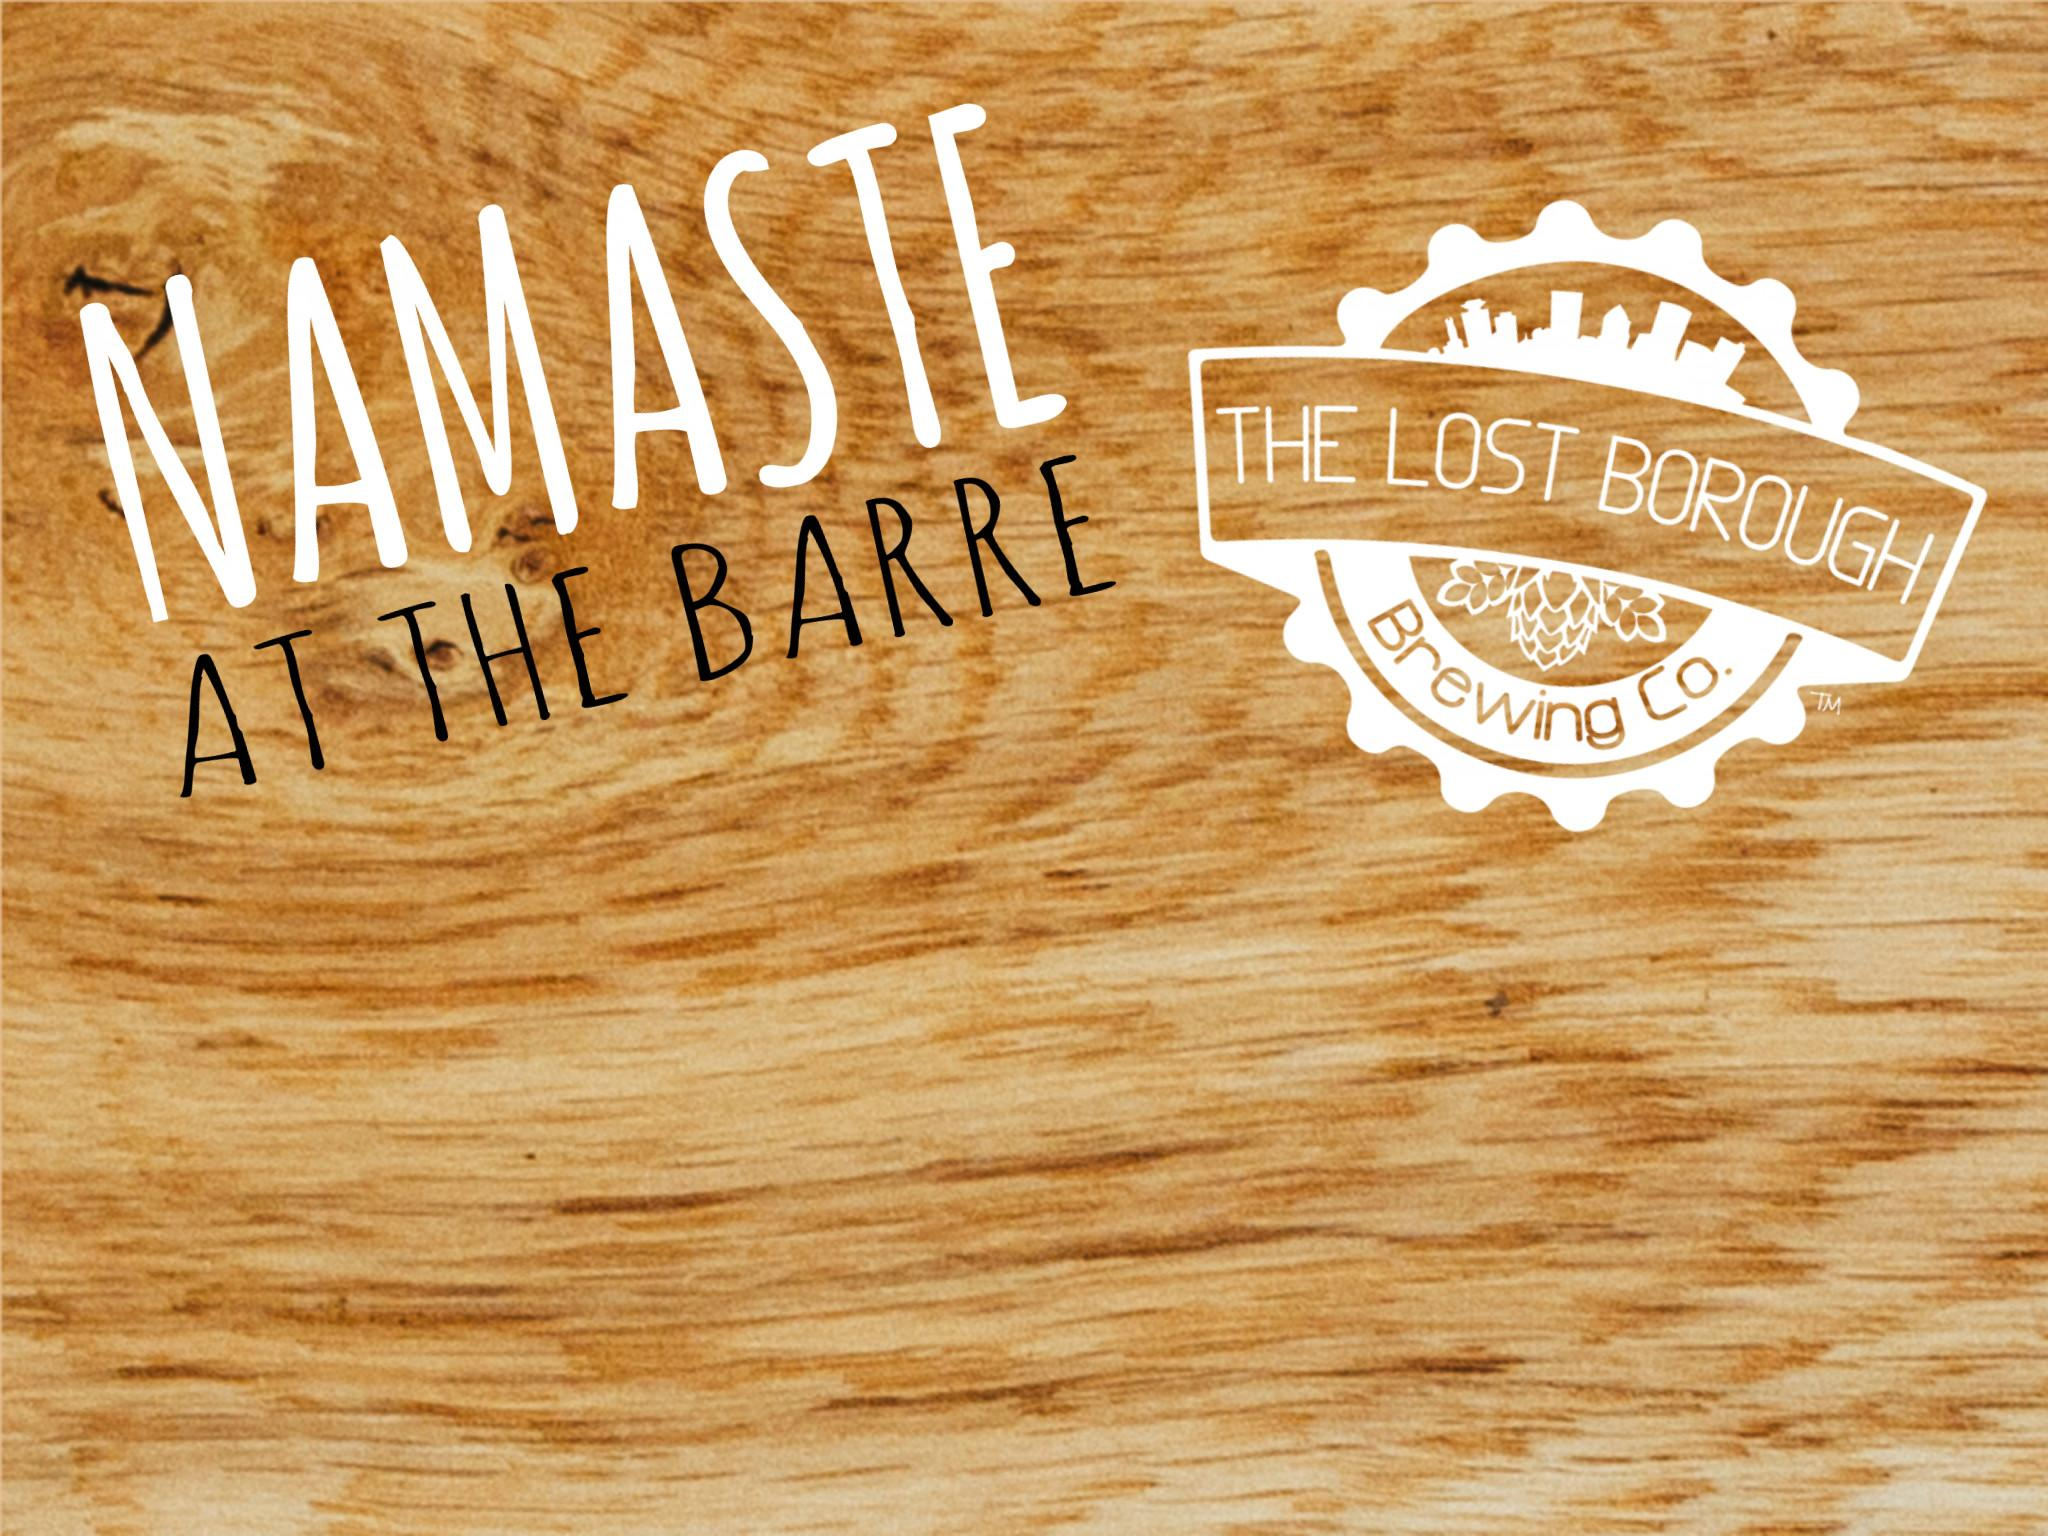 Namaste at the Barre @ The Lost Borough Brewi